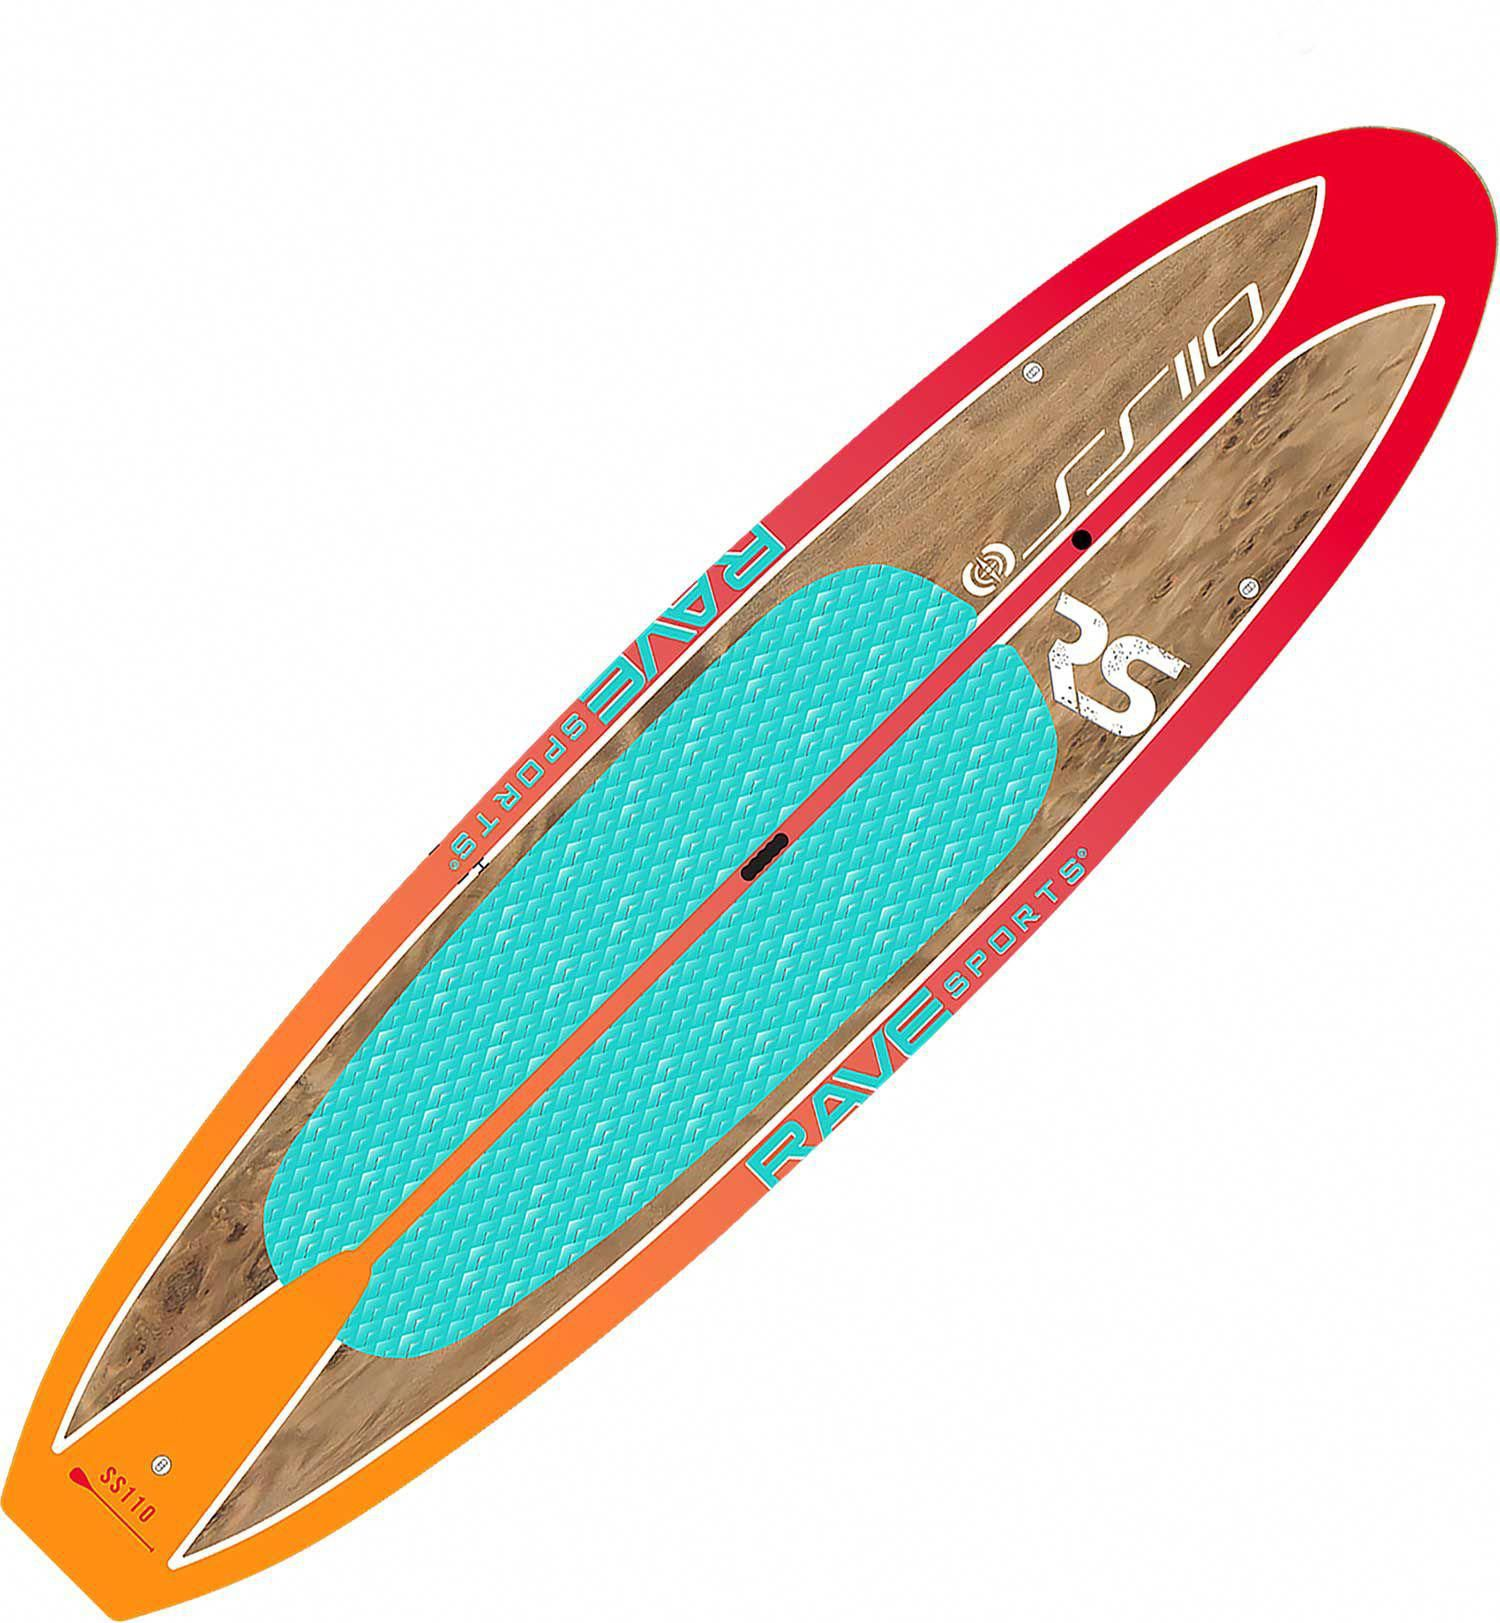 ad3223358 Rave Sports Shore 11 Stand-Up Paddle Board